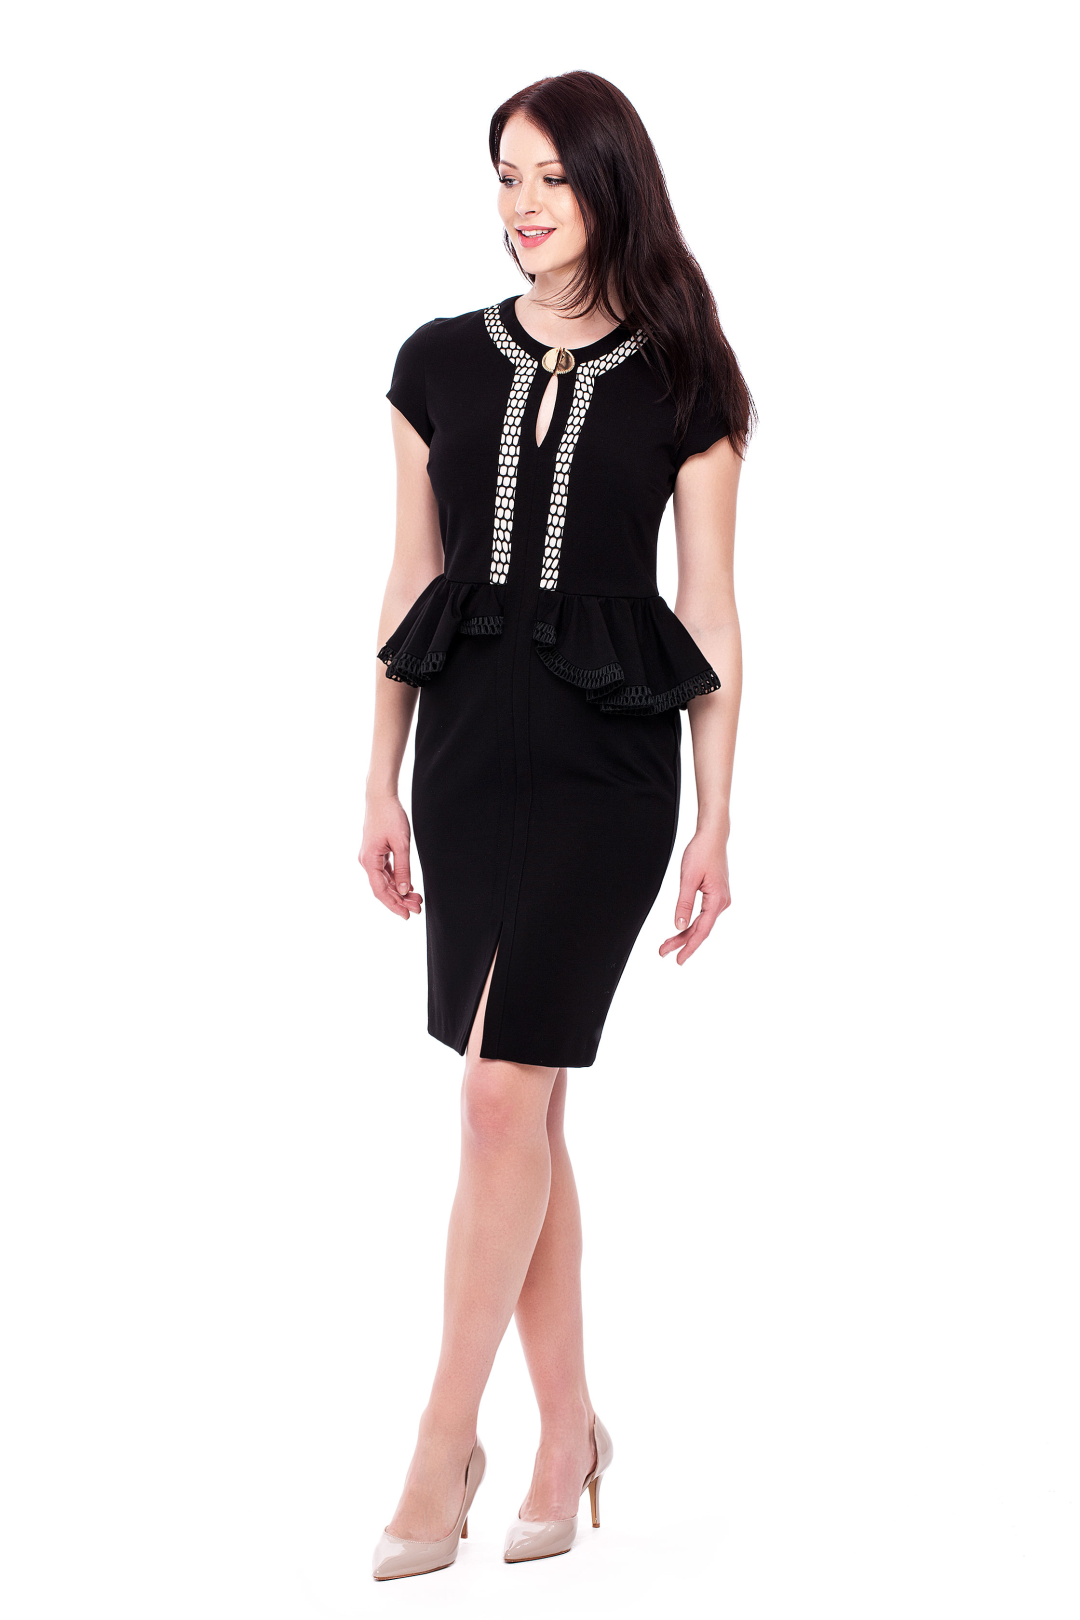 Ornamented Peplum Dress